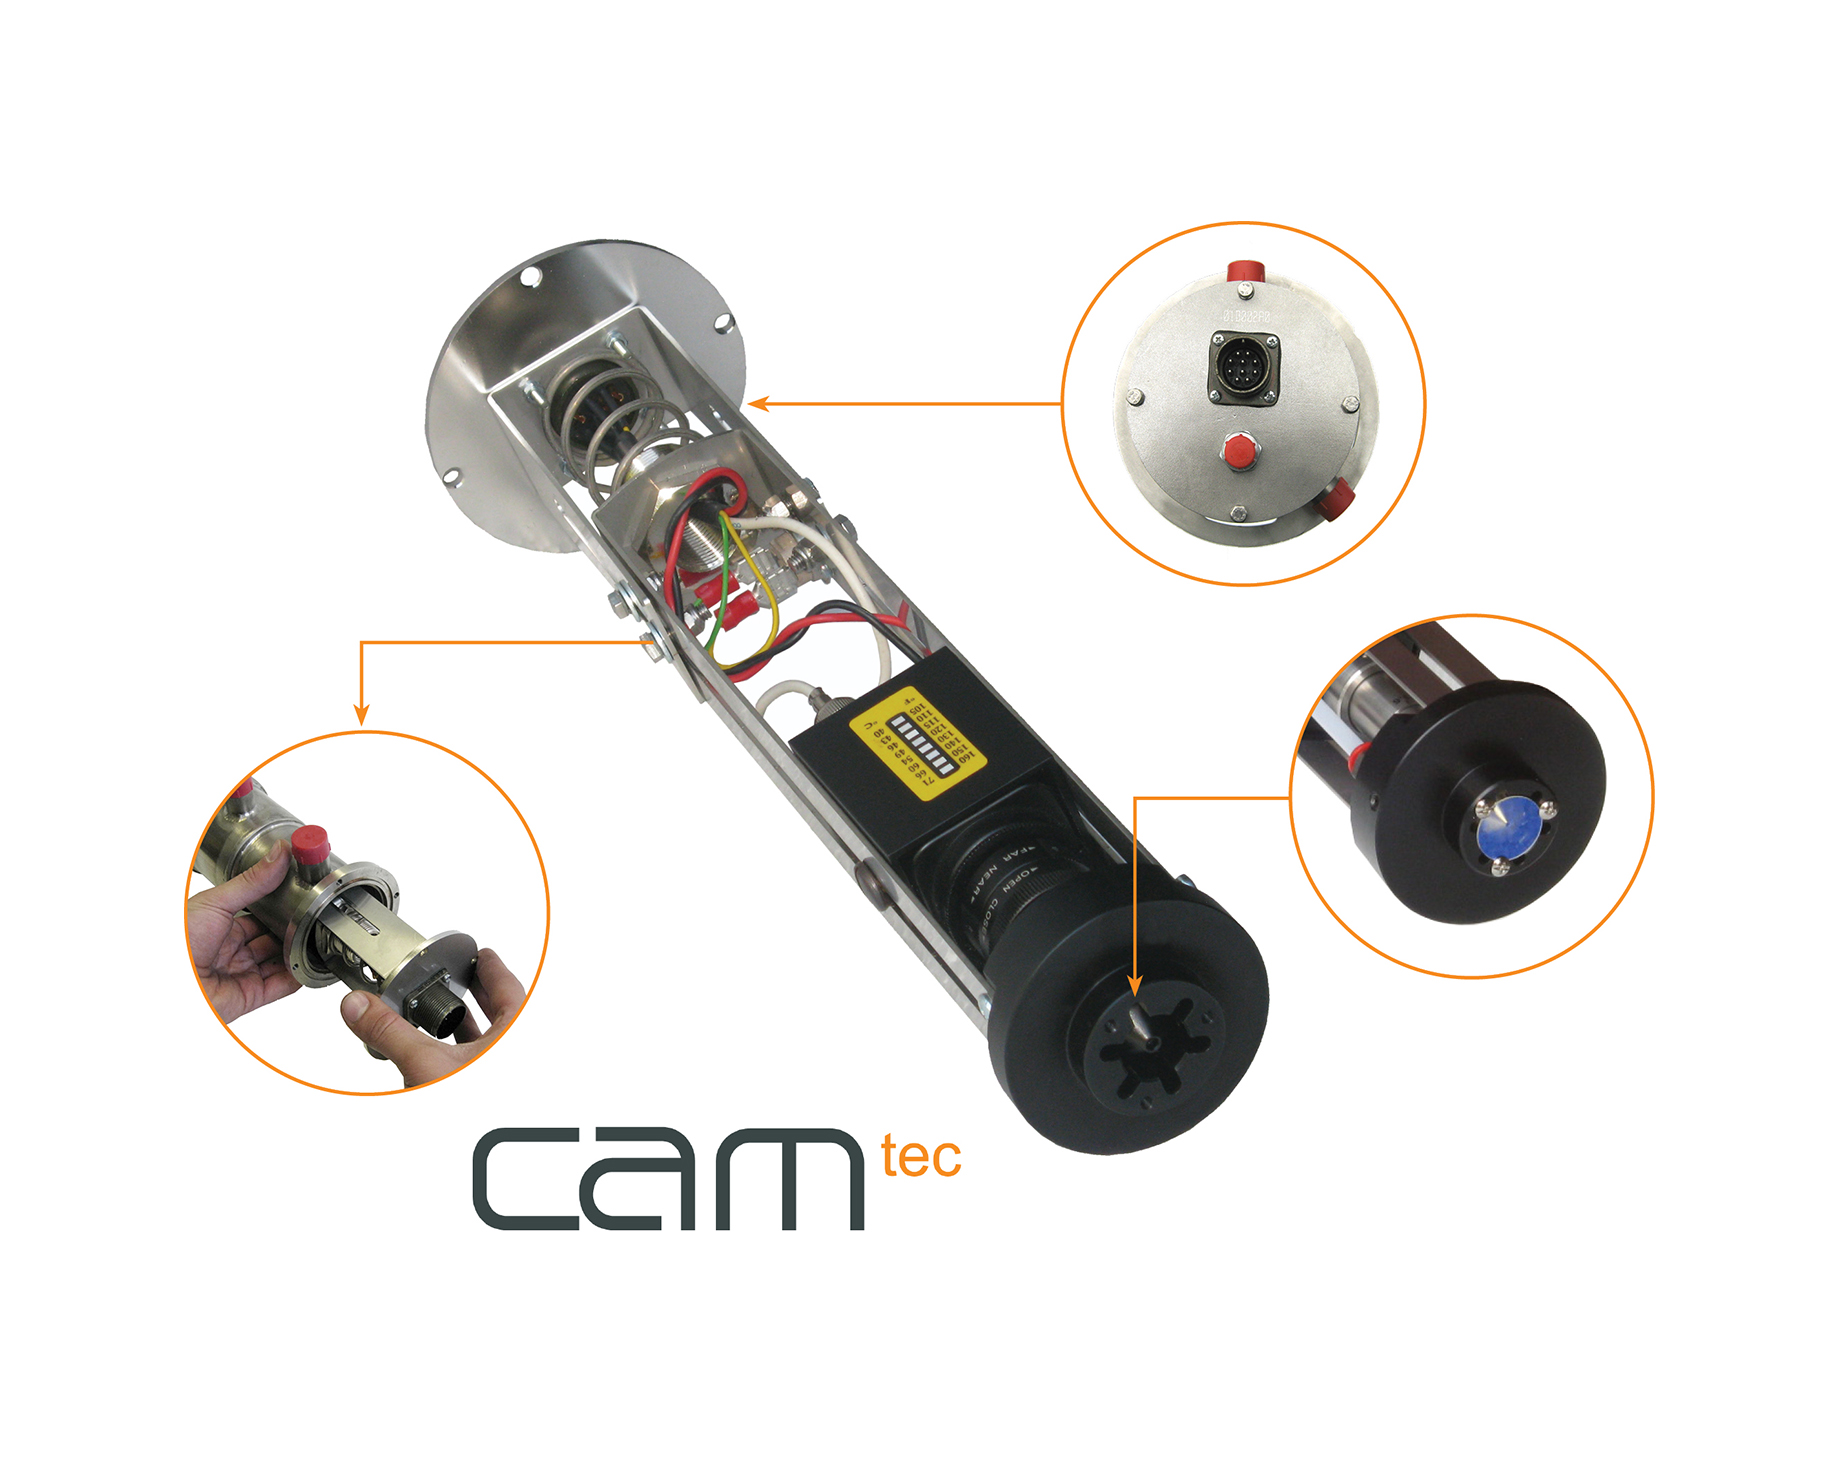 High temperature cameras (CAMTEC)